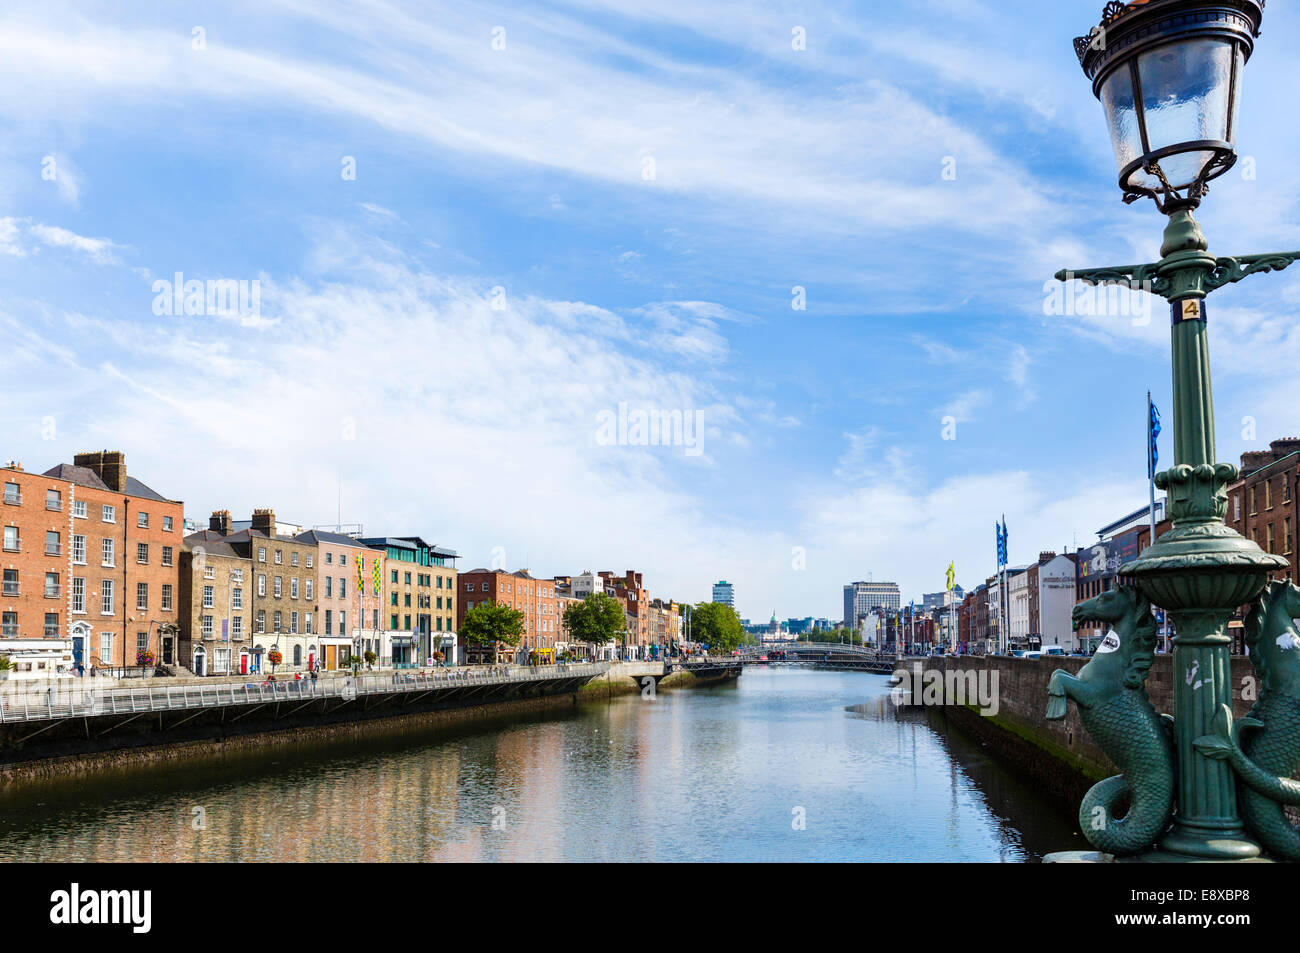 River Liffey from Grattan Bridge, Dublin City, Republic of Ireland - Stock Image